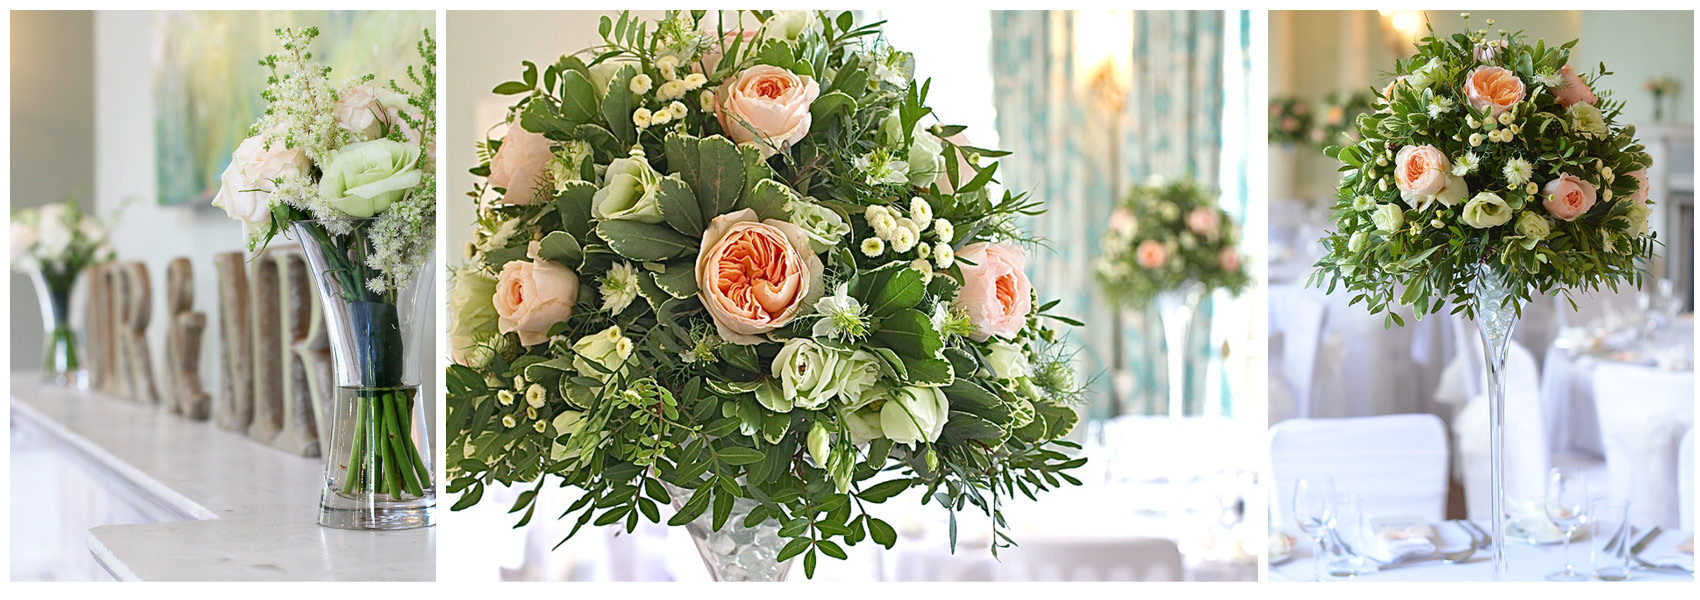 summer wedding with david austin roses at old alresford house hampshire